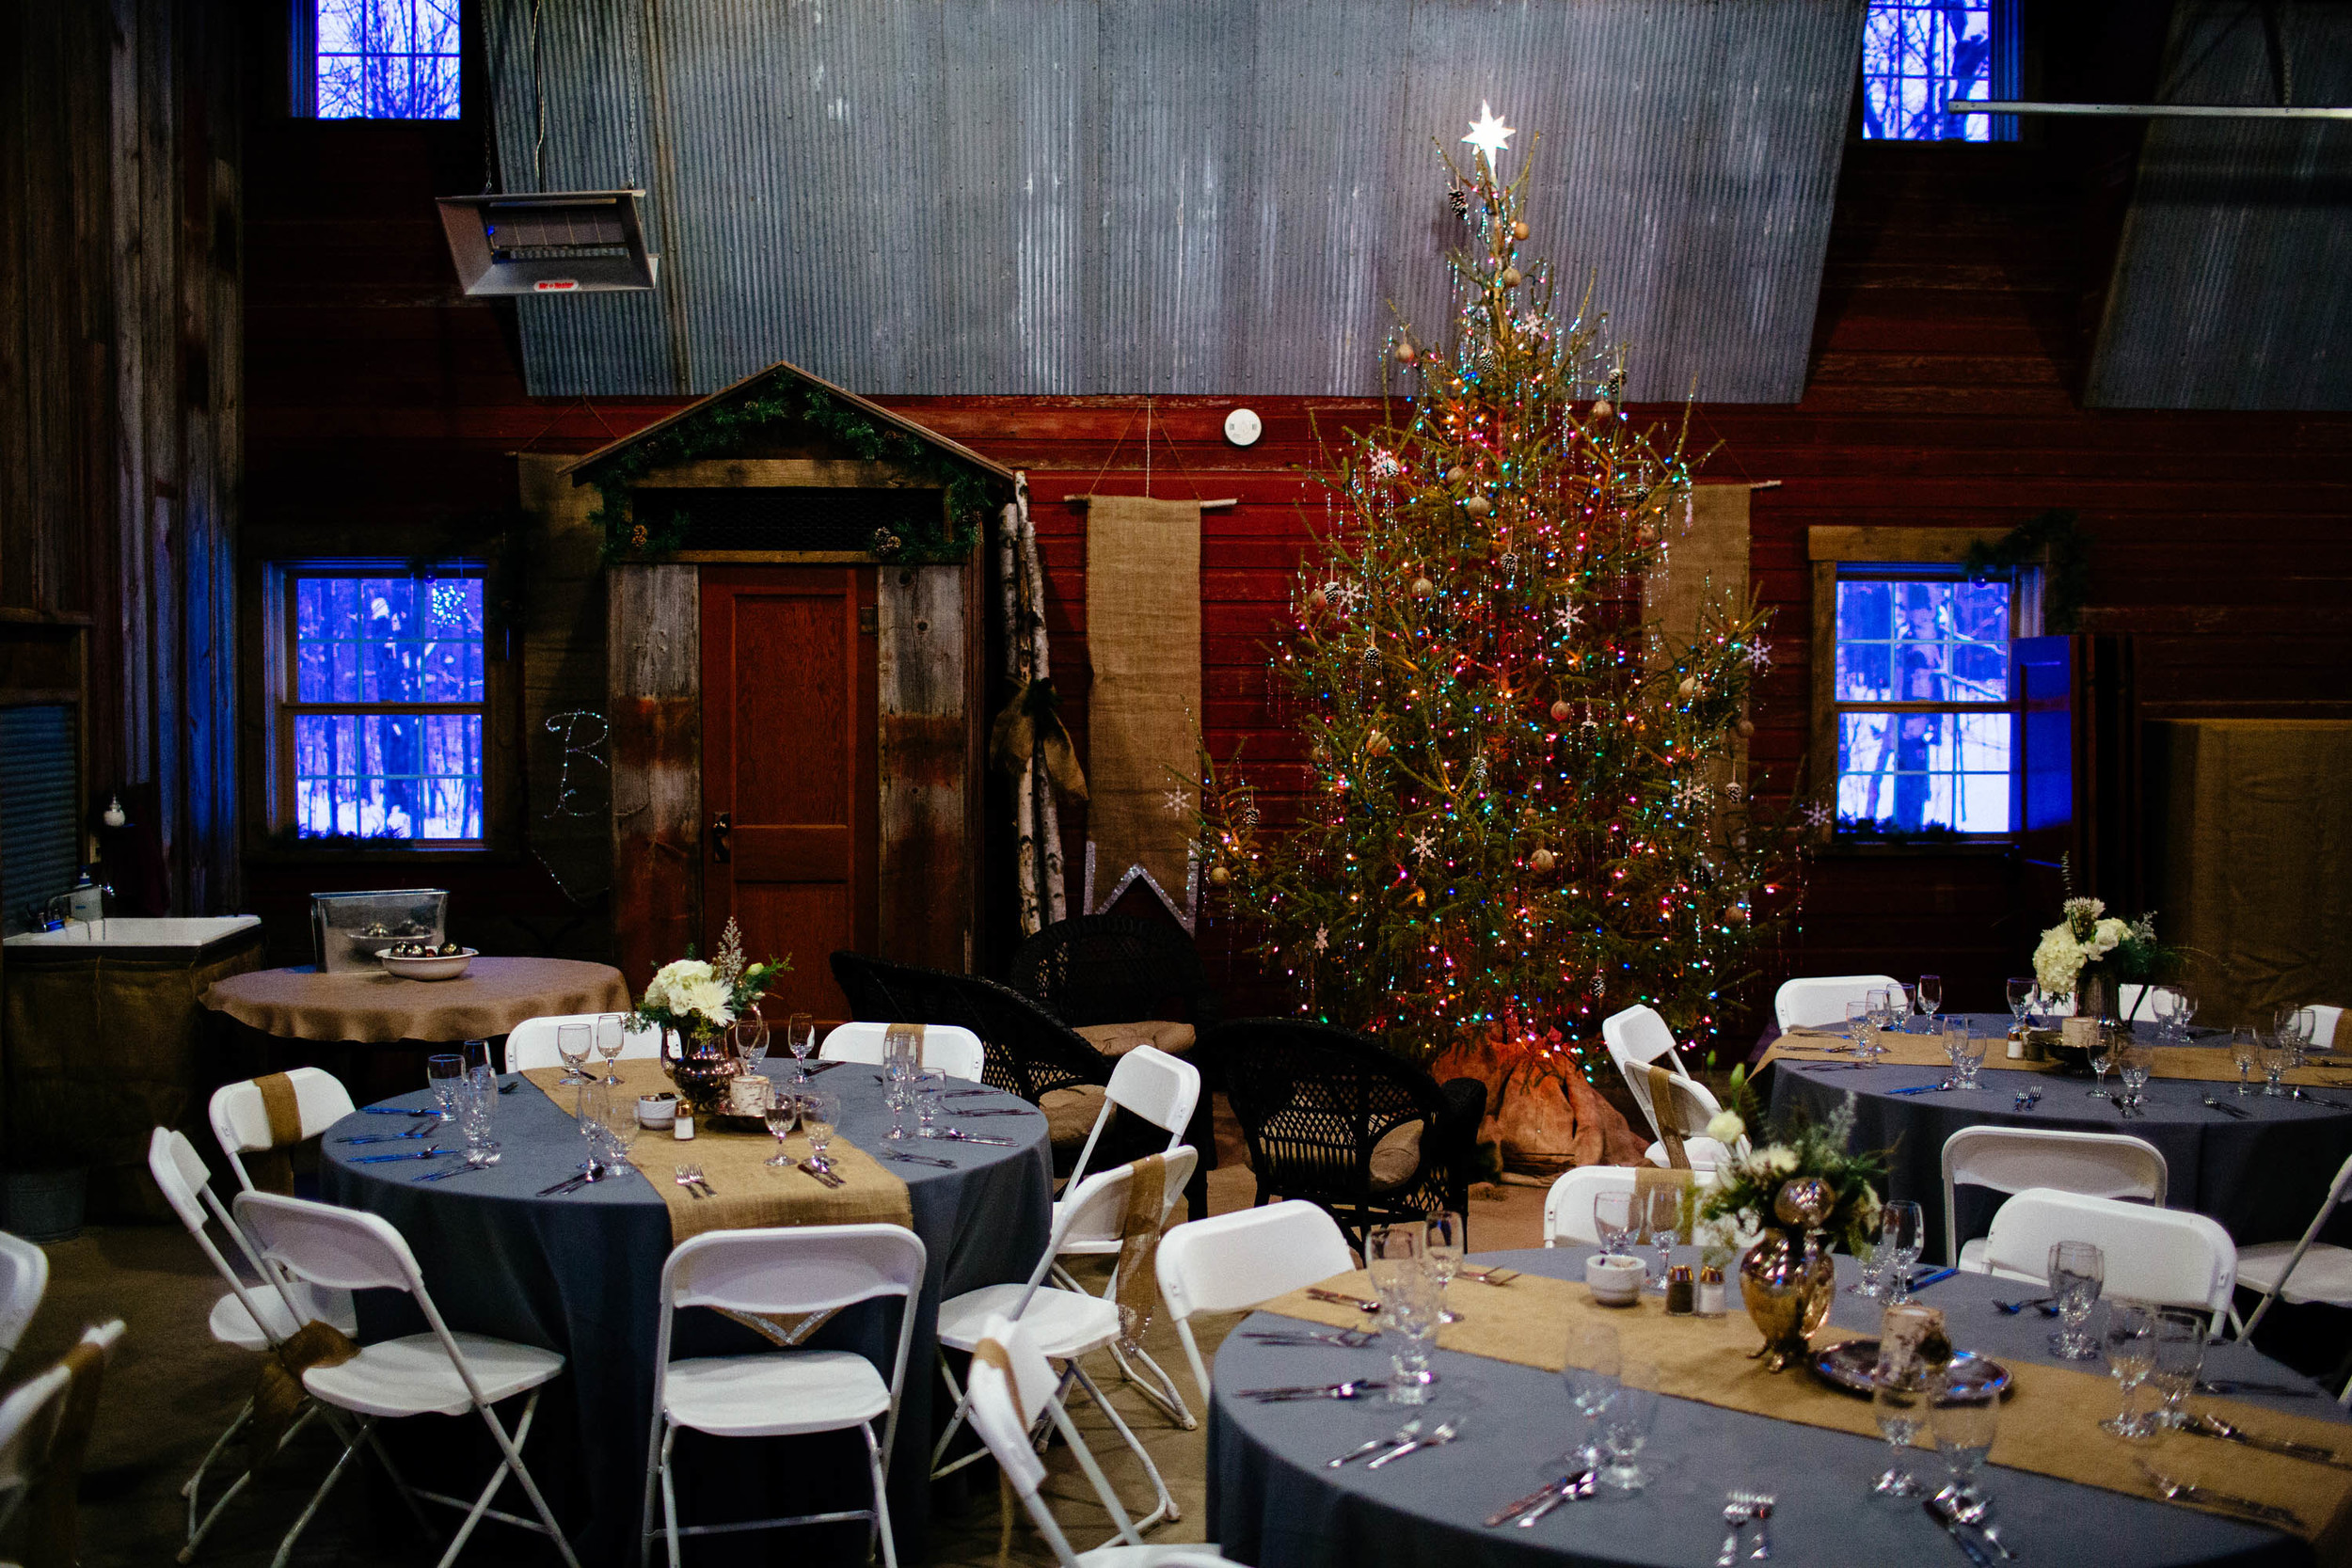 Winter Wedding Decor at Oliver Acreage Bed and Breakfast In Brai